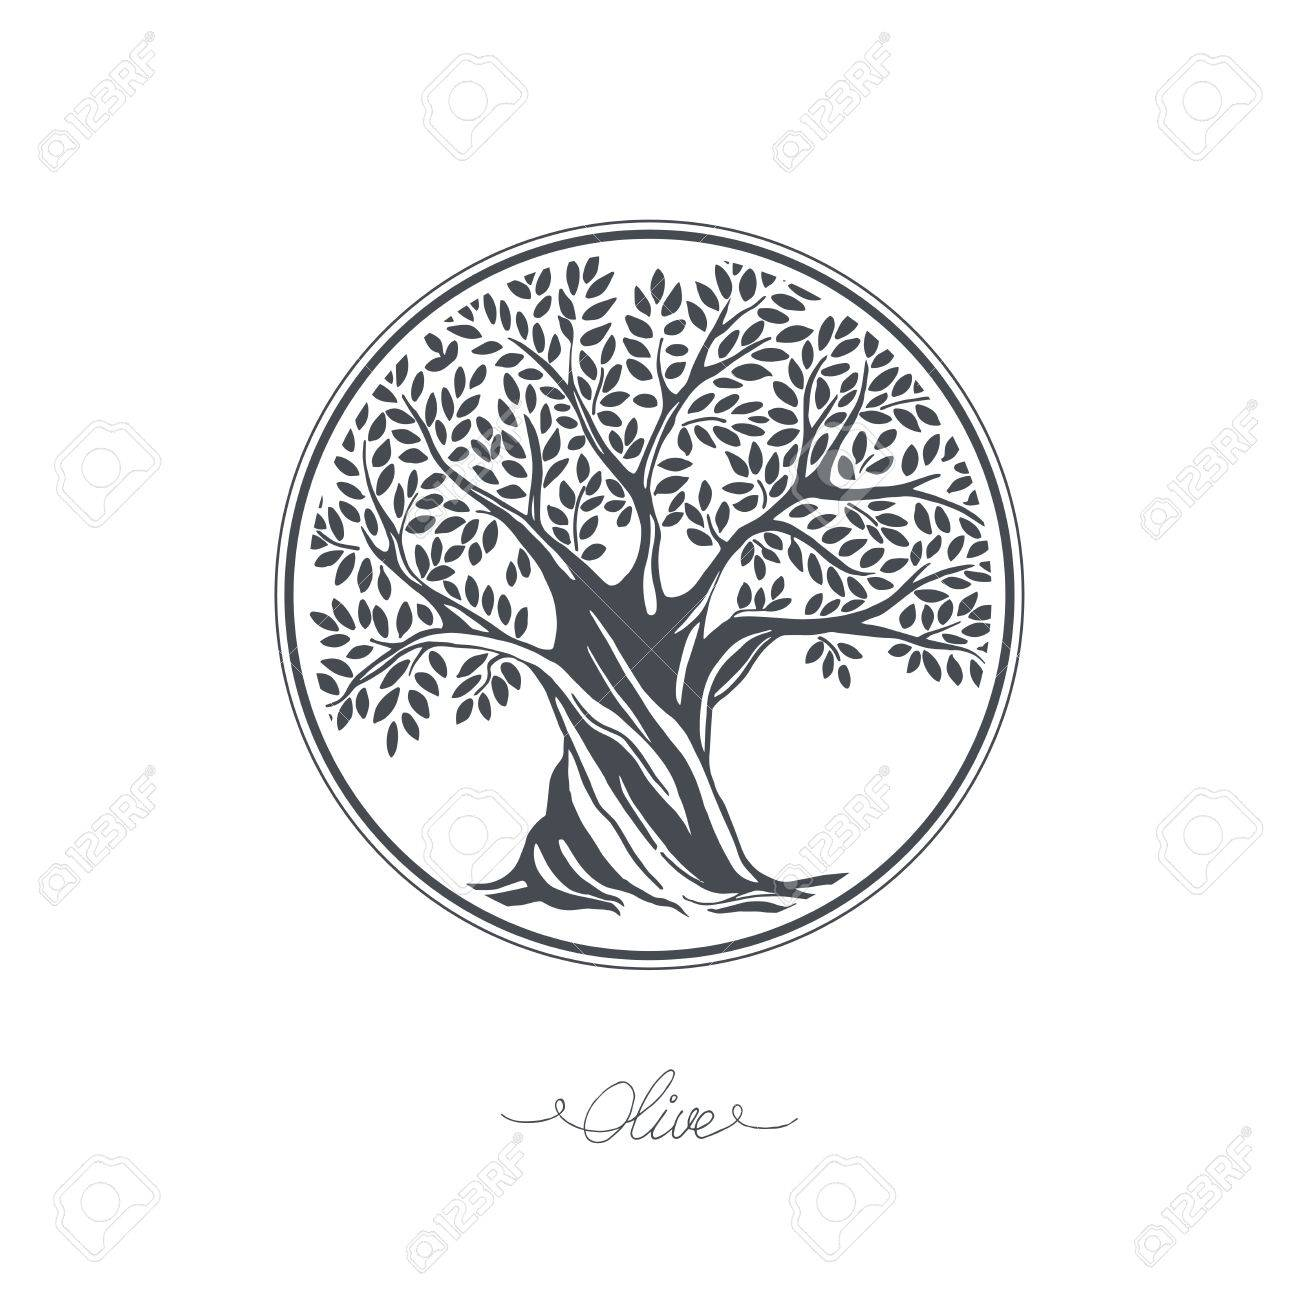 1299x1300 Hand Drawn Olive Tree. Vector Sketch Illustration Royalty Free